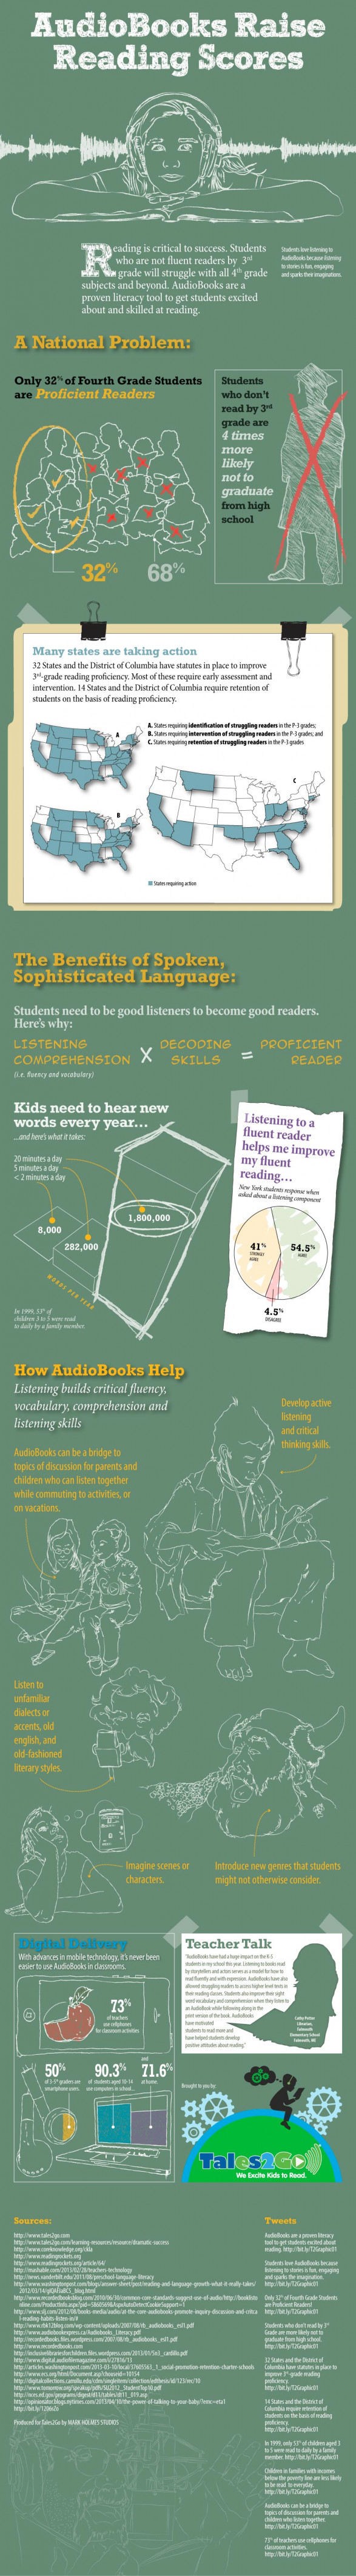 AudioBooks Raise Reading Scores